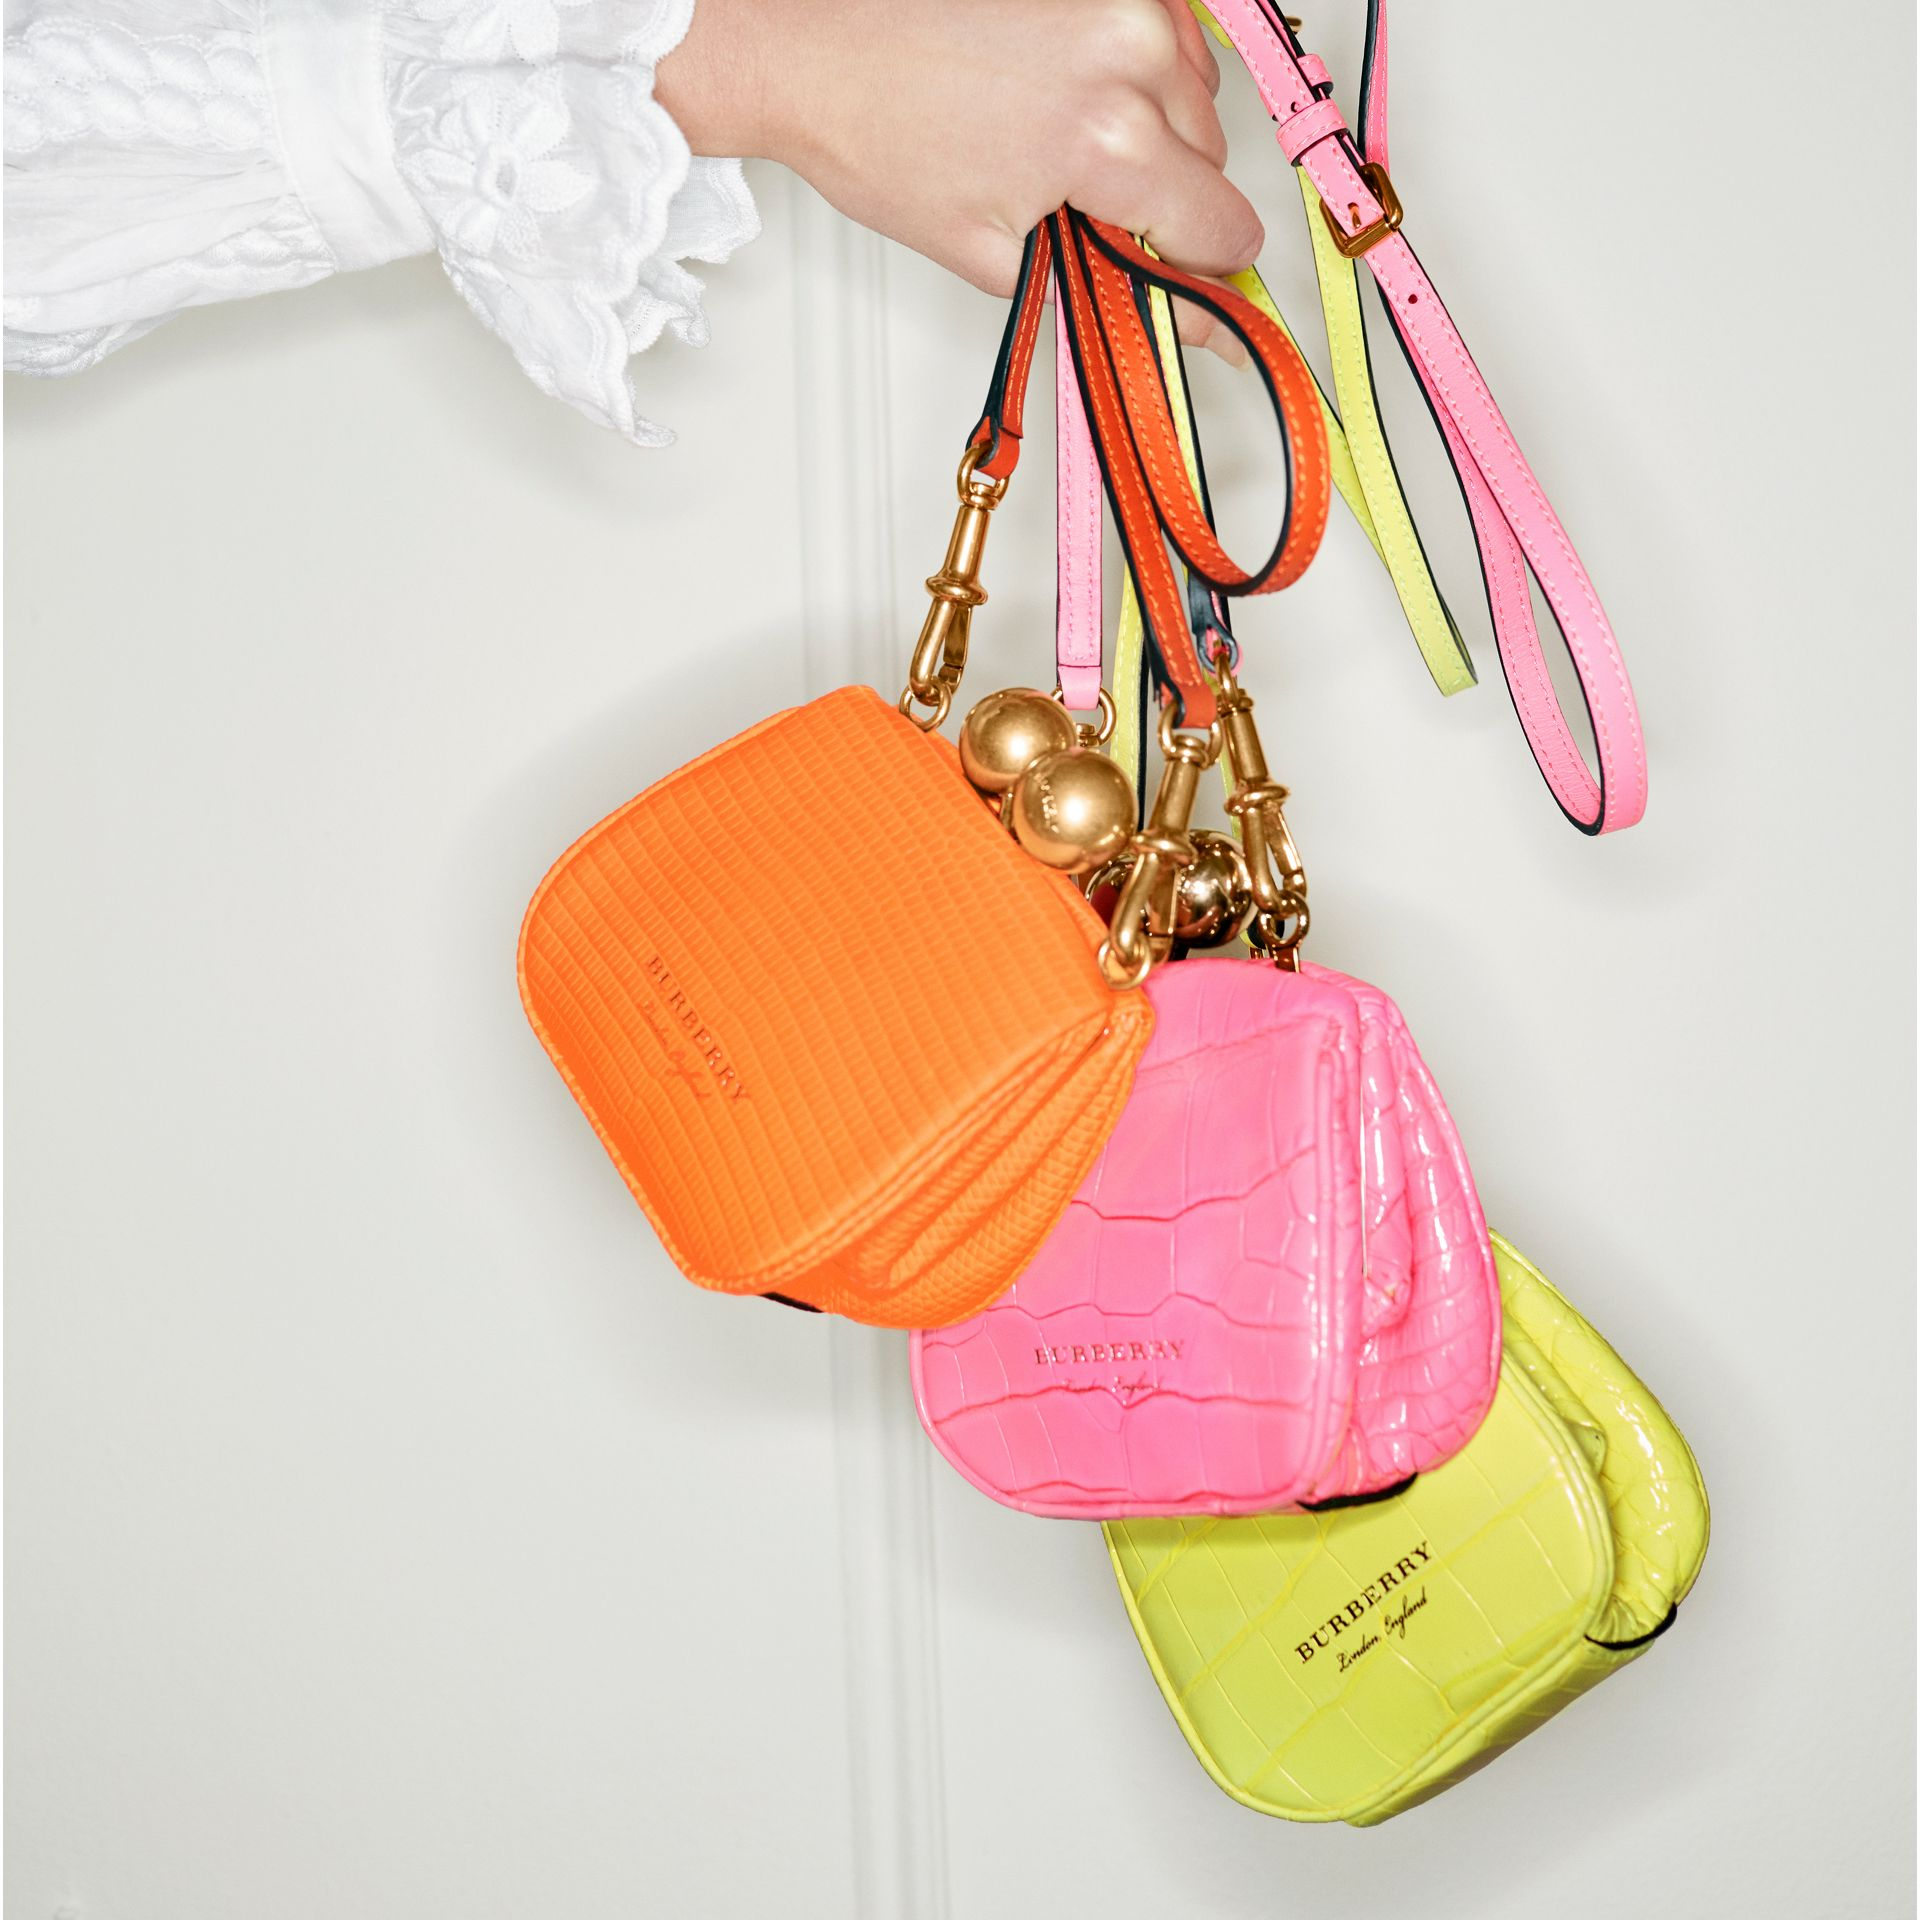 Mini Alligator Frame Bag in Neon Pink - Women | Burberry - gallery image 6